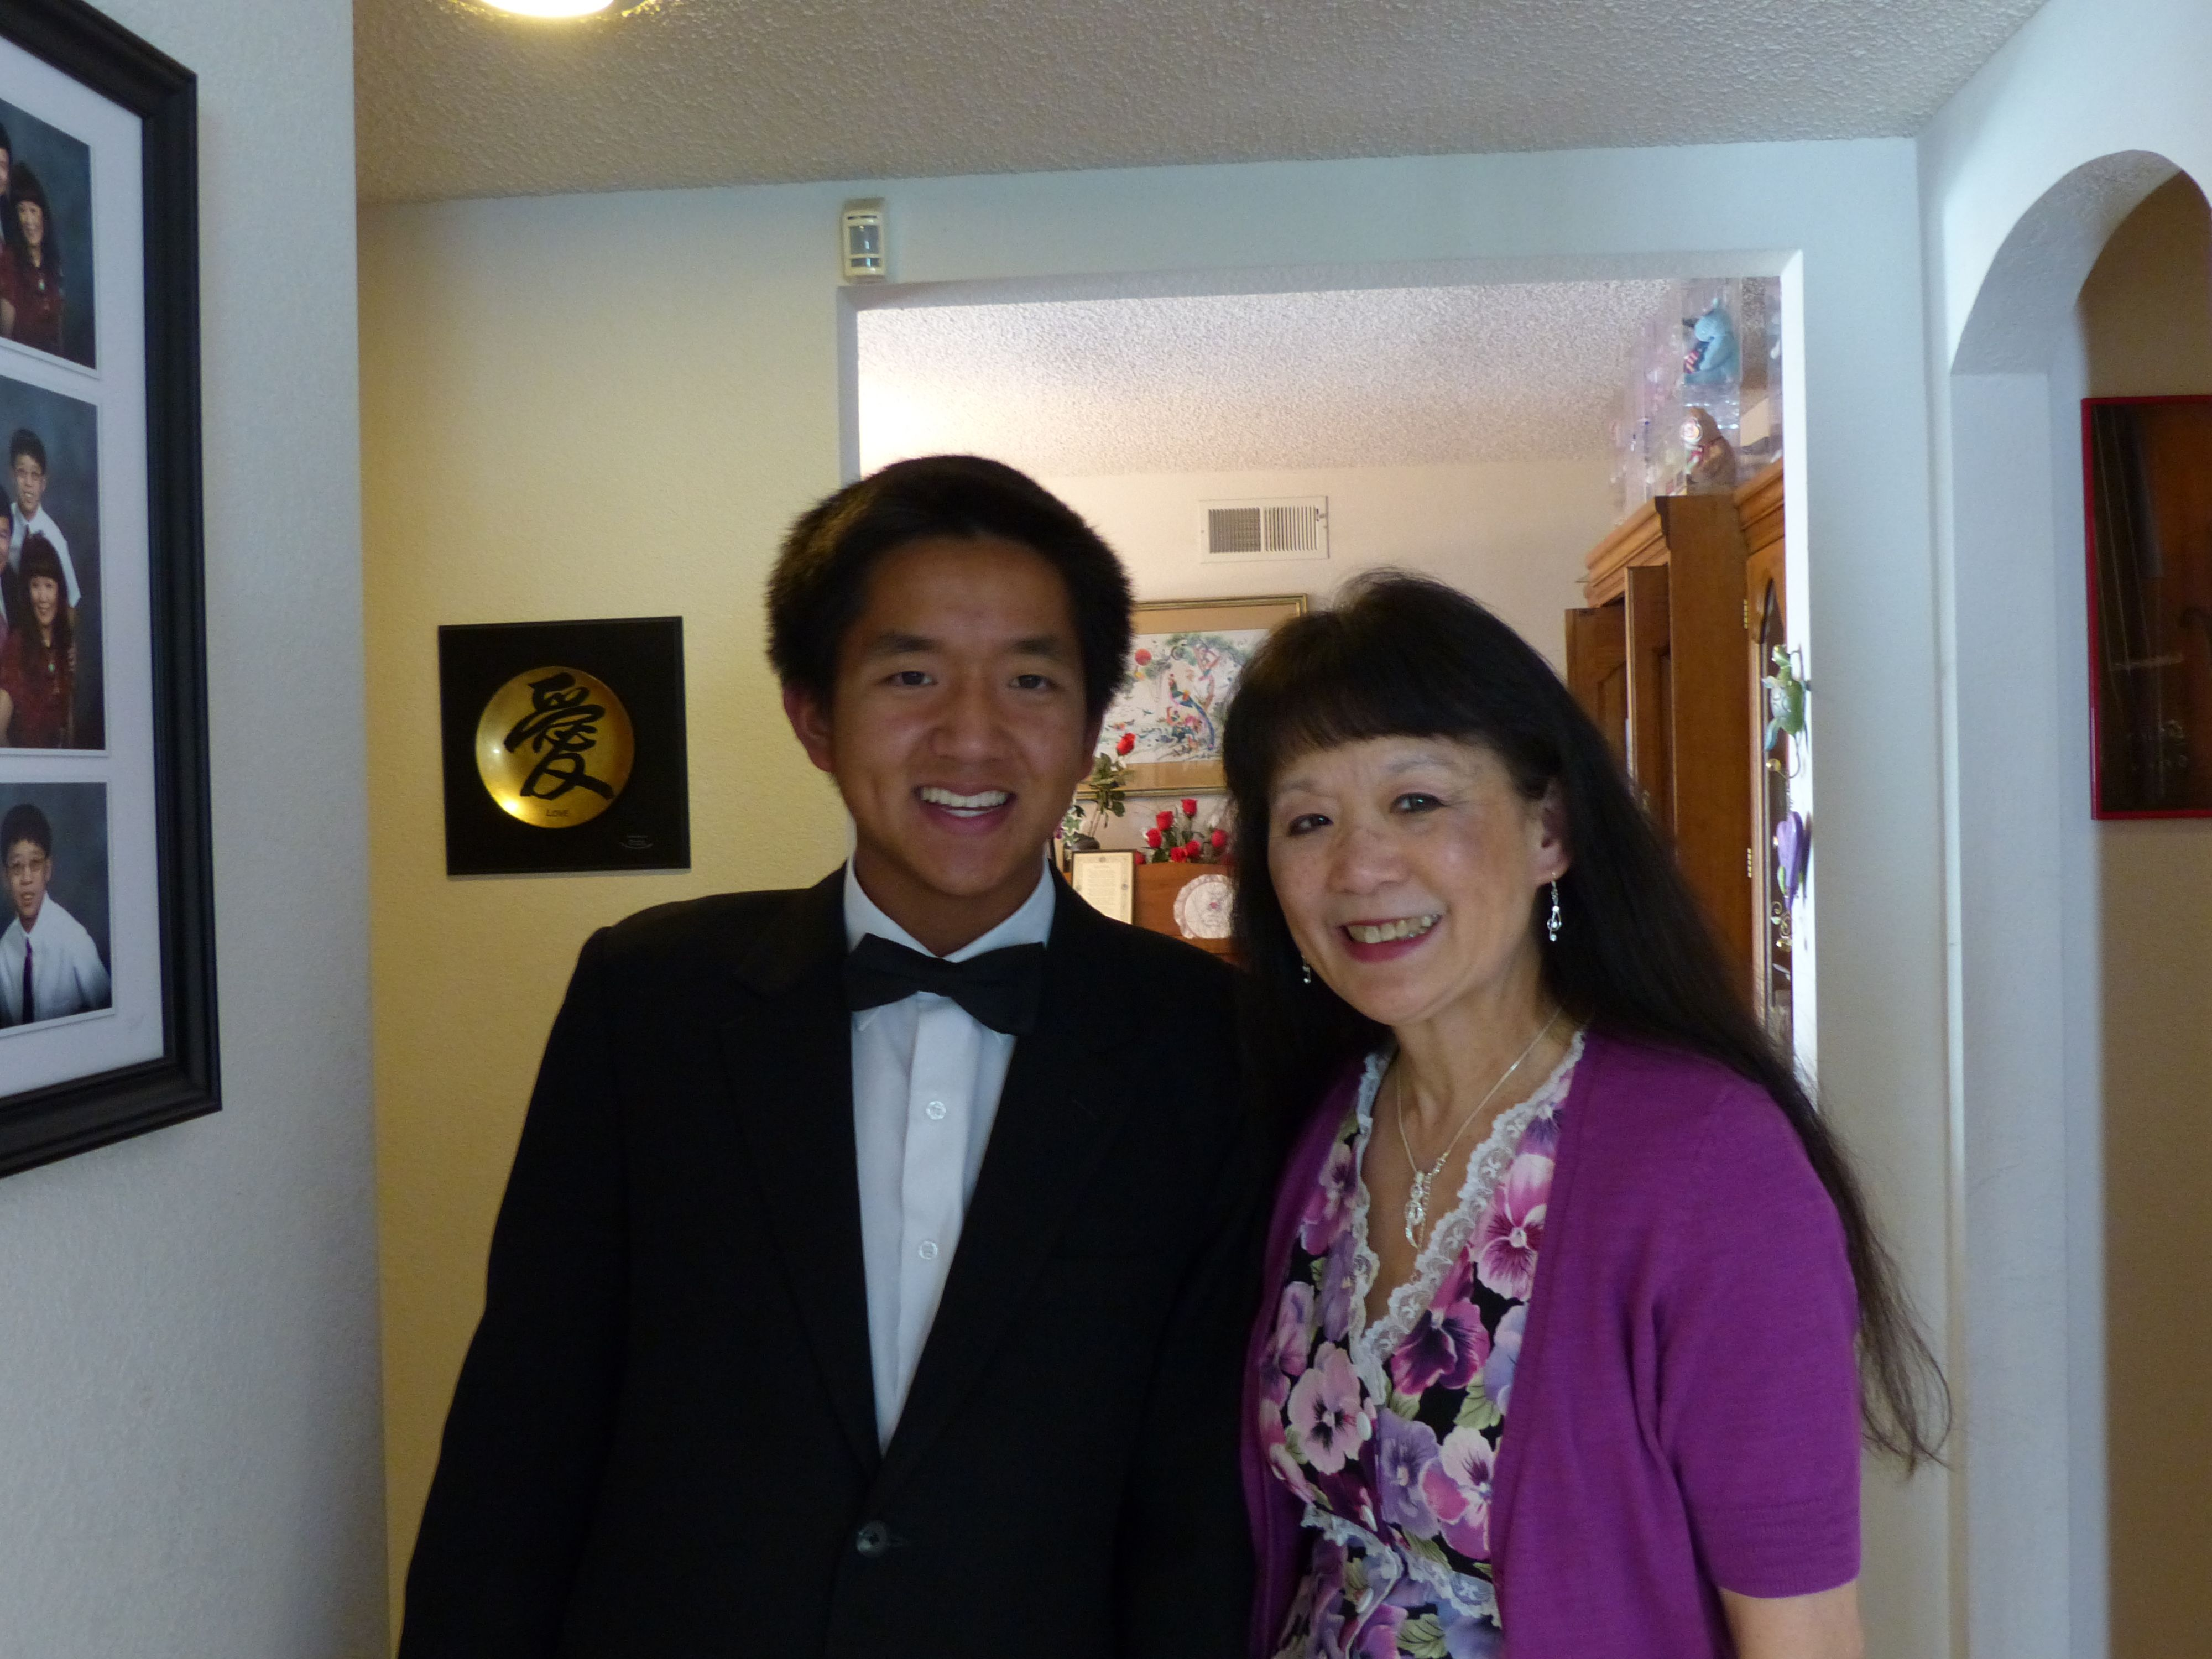 Patrick Yieh and I at my piano recitals on May 10, 2014.  Patrick just had won 3rd place at the Palo Alto US opens in piano for playing Chopin's Scherzo No. 2 in B flat Minor Opus 31.  Very gifted young man I used to teach and had not seen him since he was 9 years old.